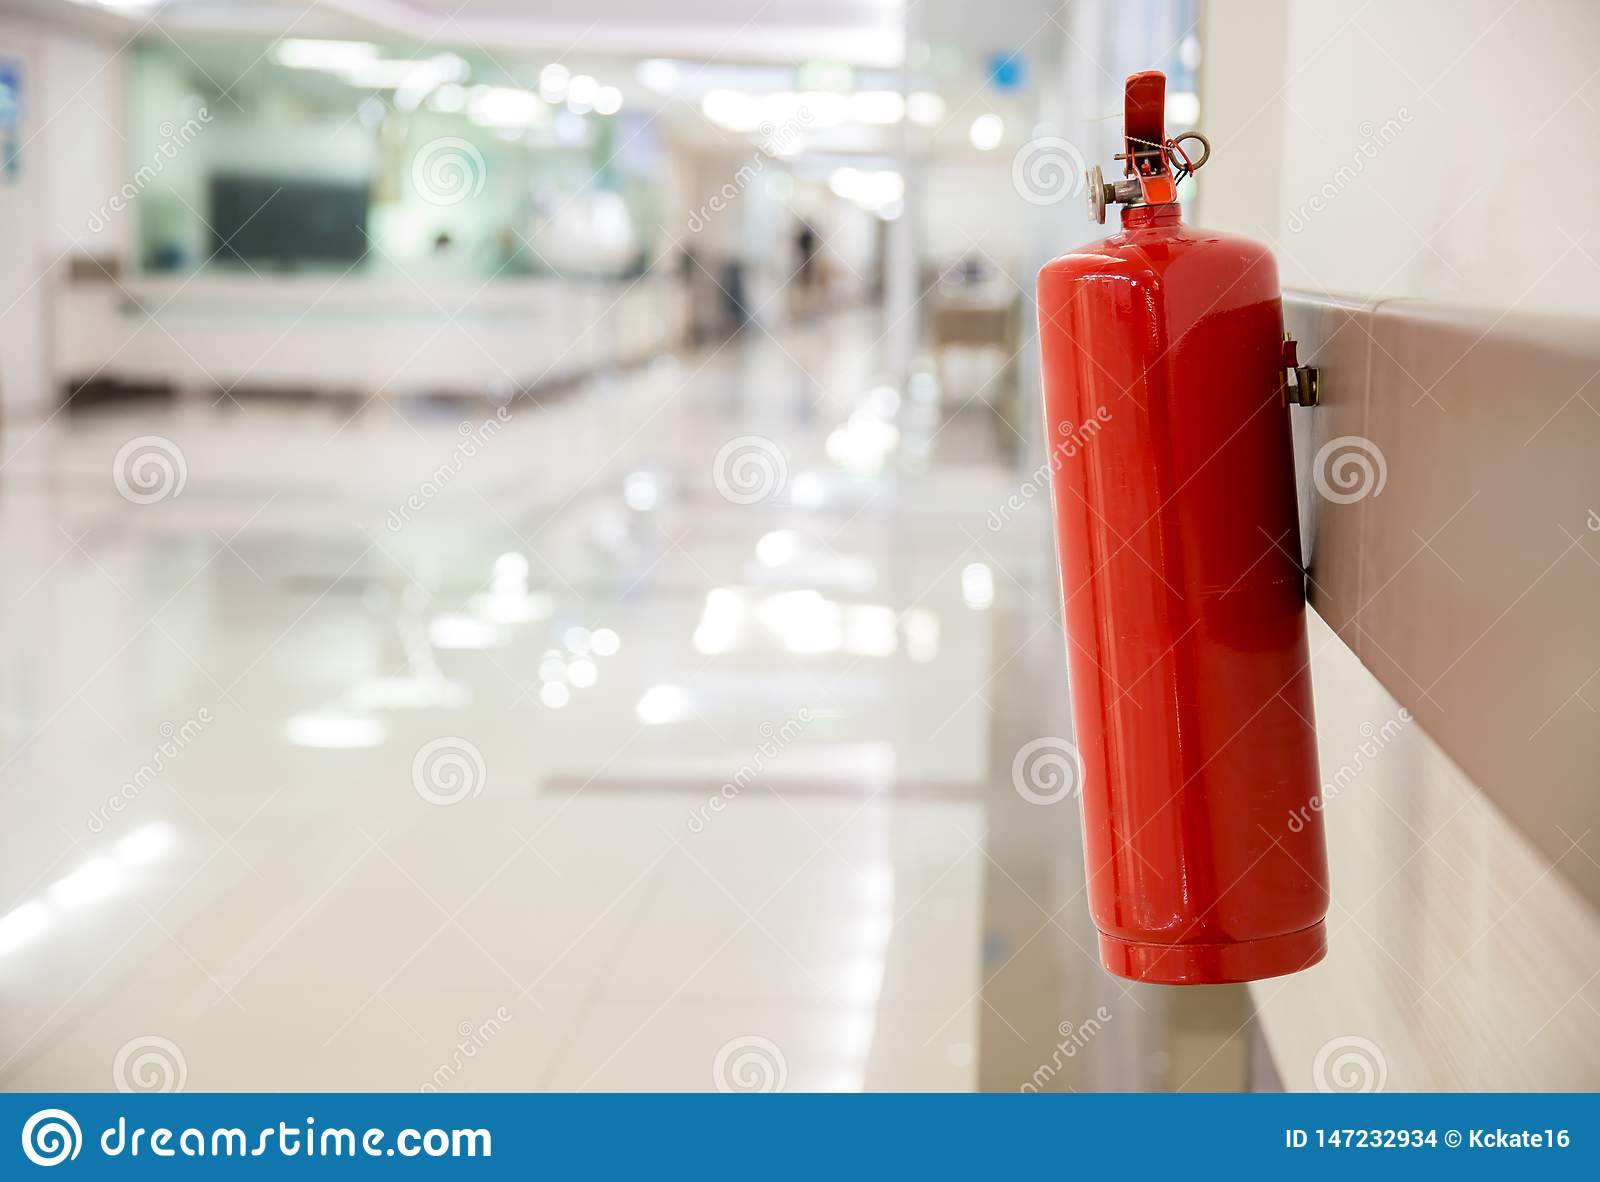 Fire extinguisher in the operating department . Install a fire extinguisher on the wall in building. Dry chemical powder fire exti